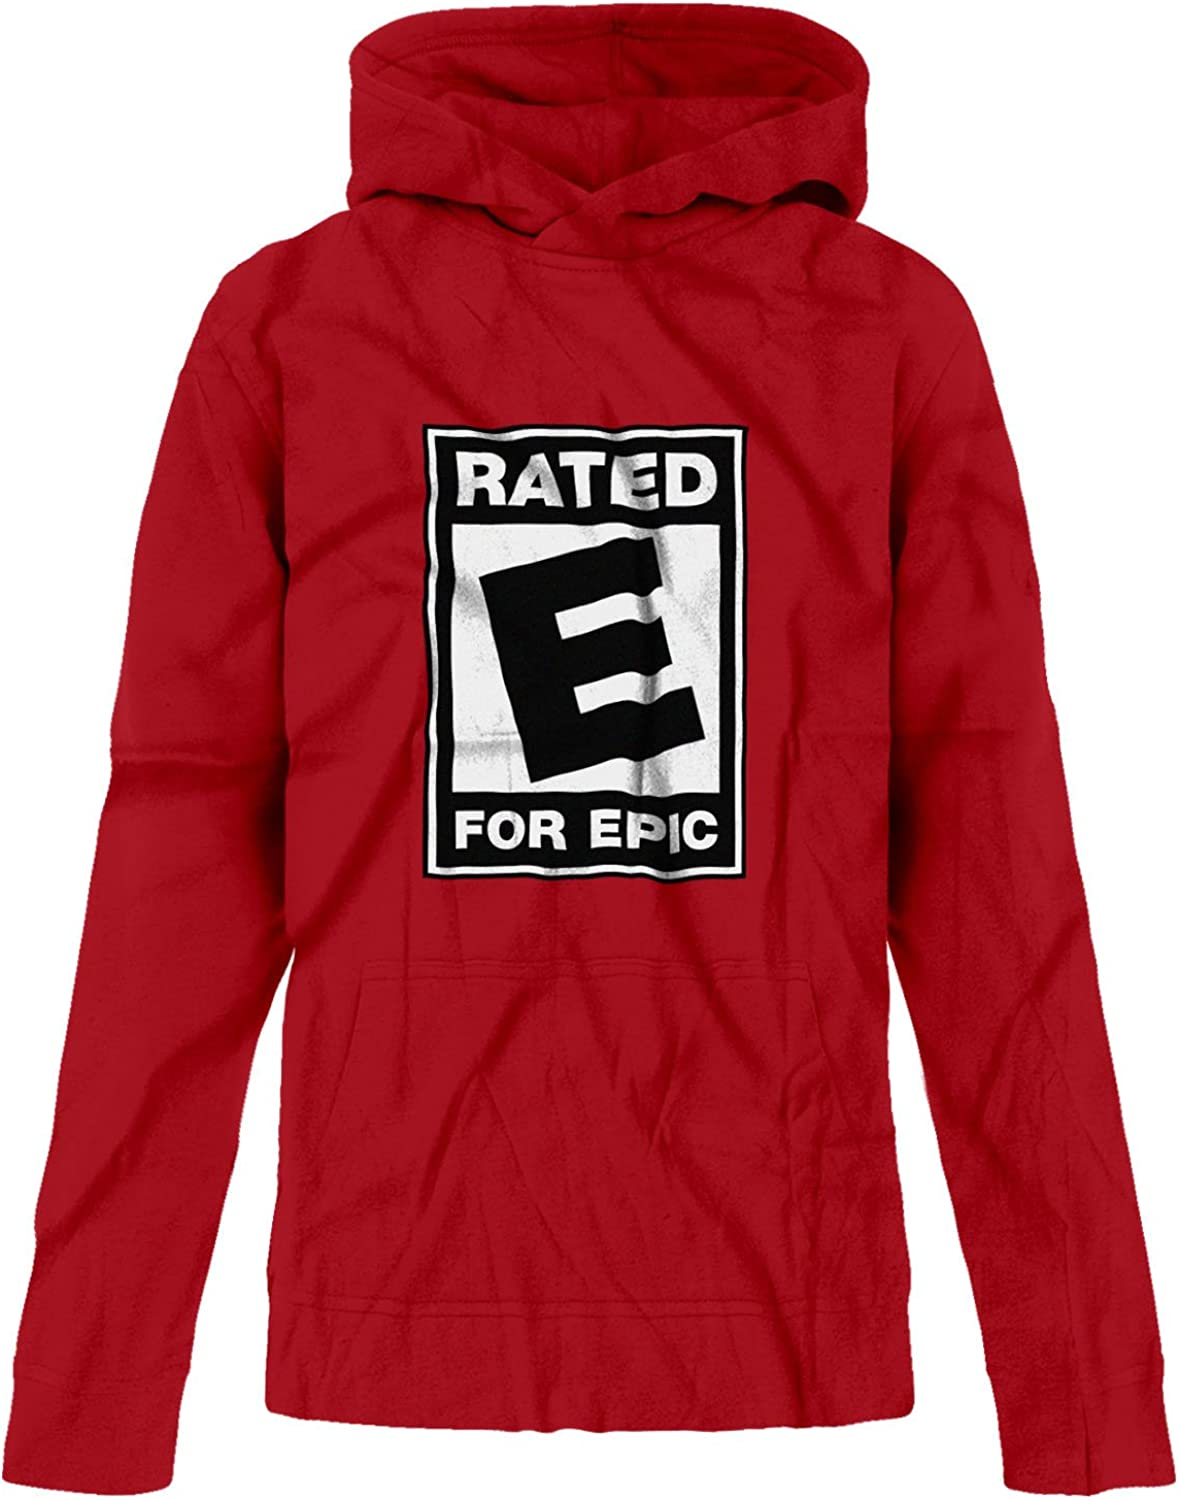 BSW Youth Girls Rated E for Epic ESRB Video Entertainment Logo Hoodie